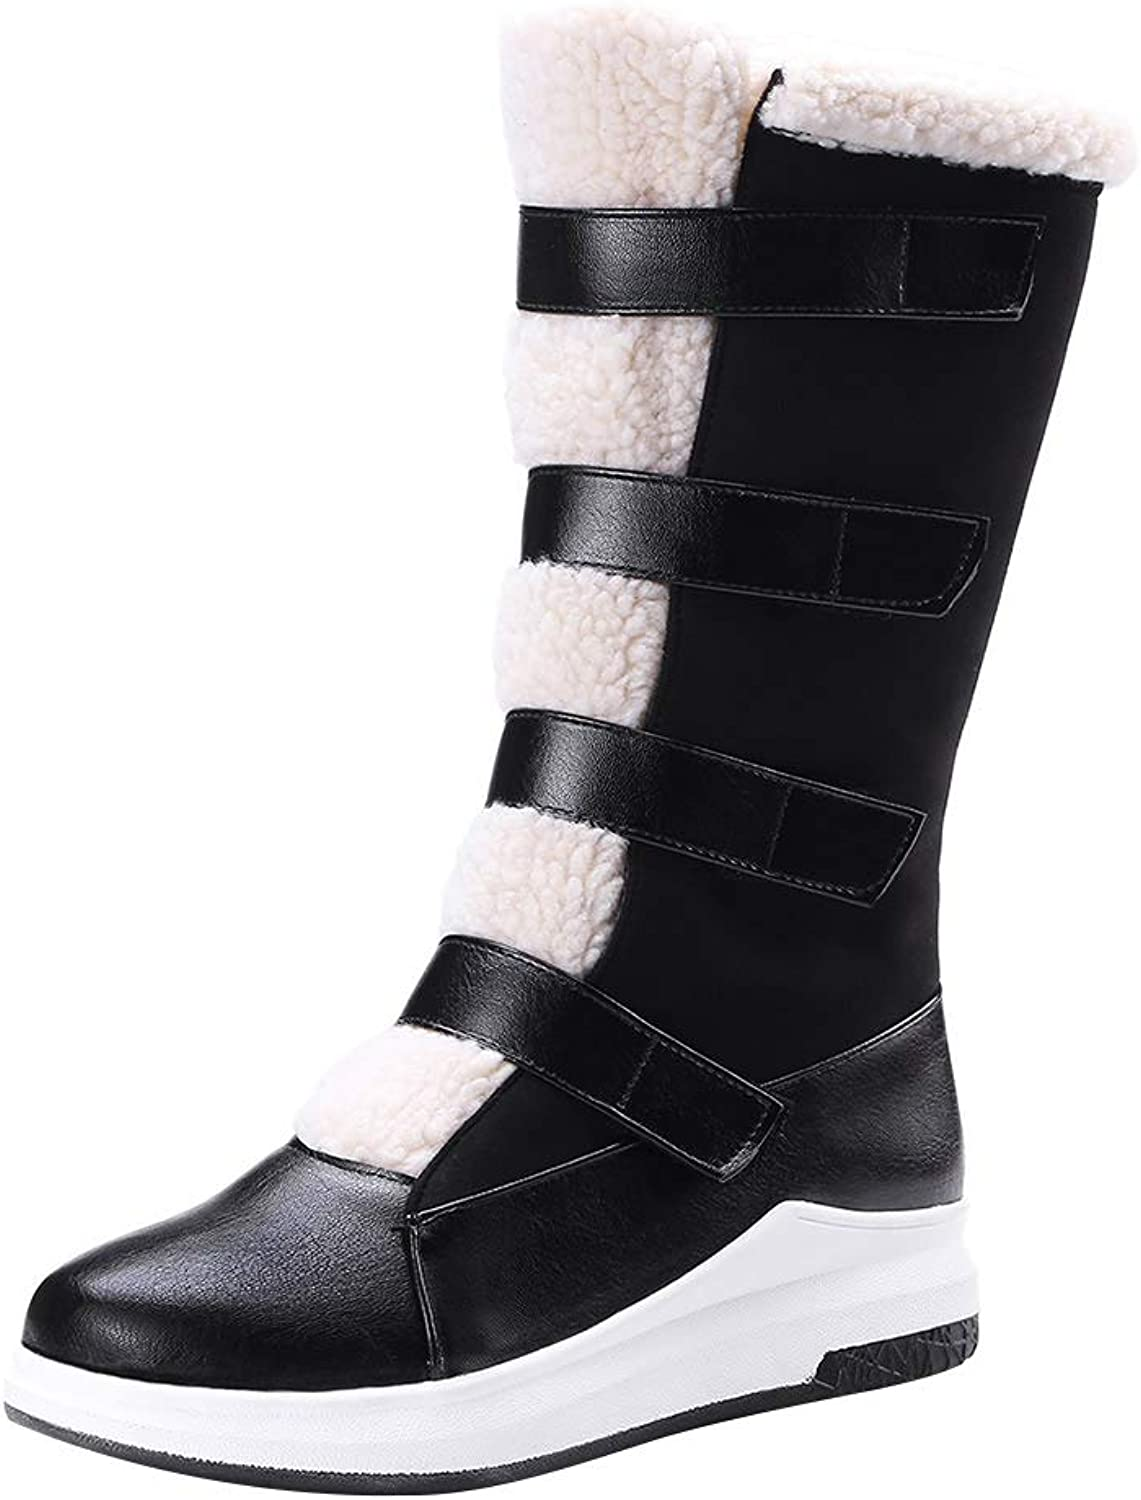 MAYPIE Womens Topale Synthetic Slip-on Mid Calf Boots